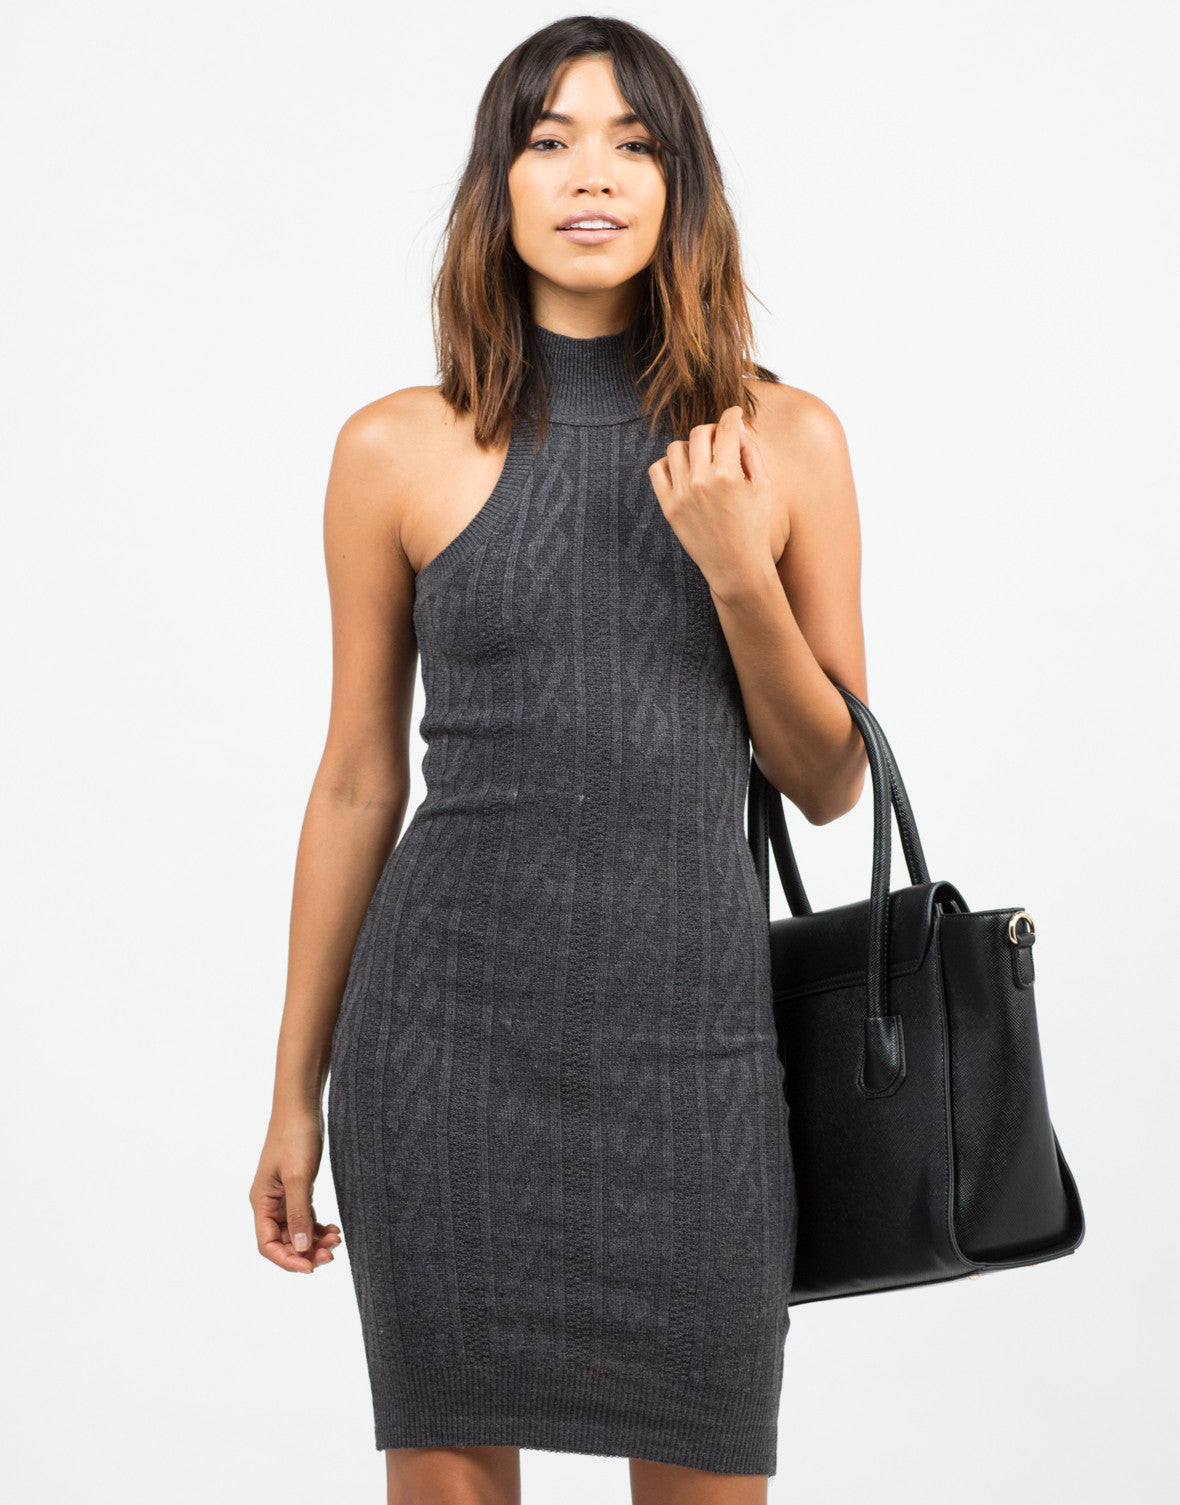 Front View of High Neck Contrast Knit Dress